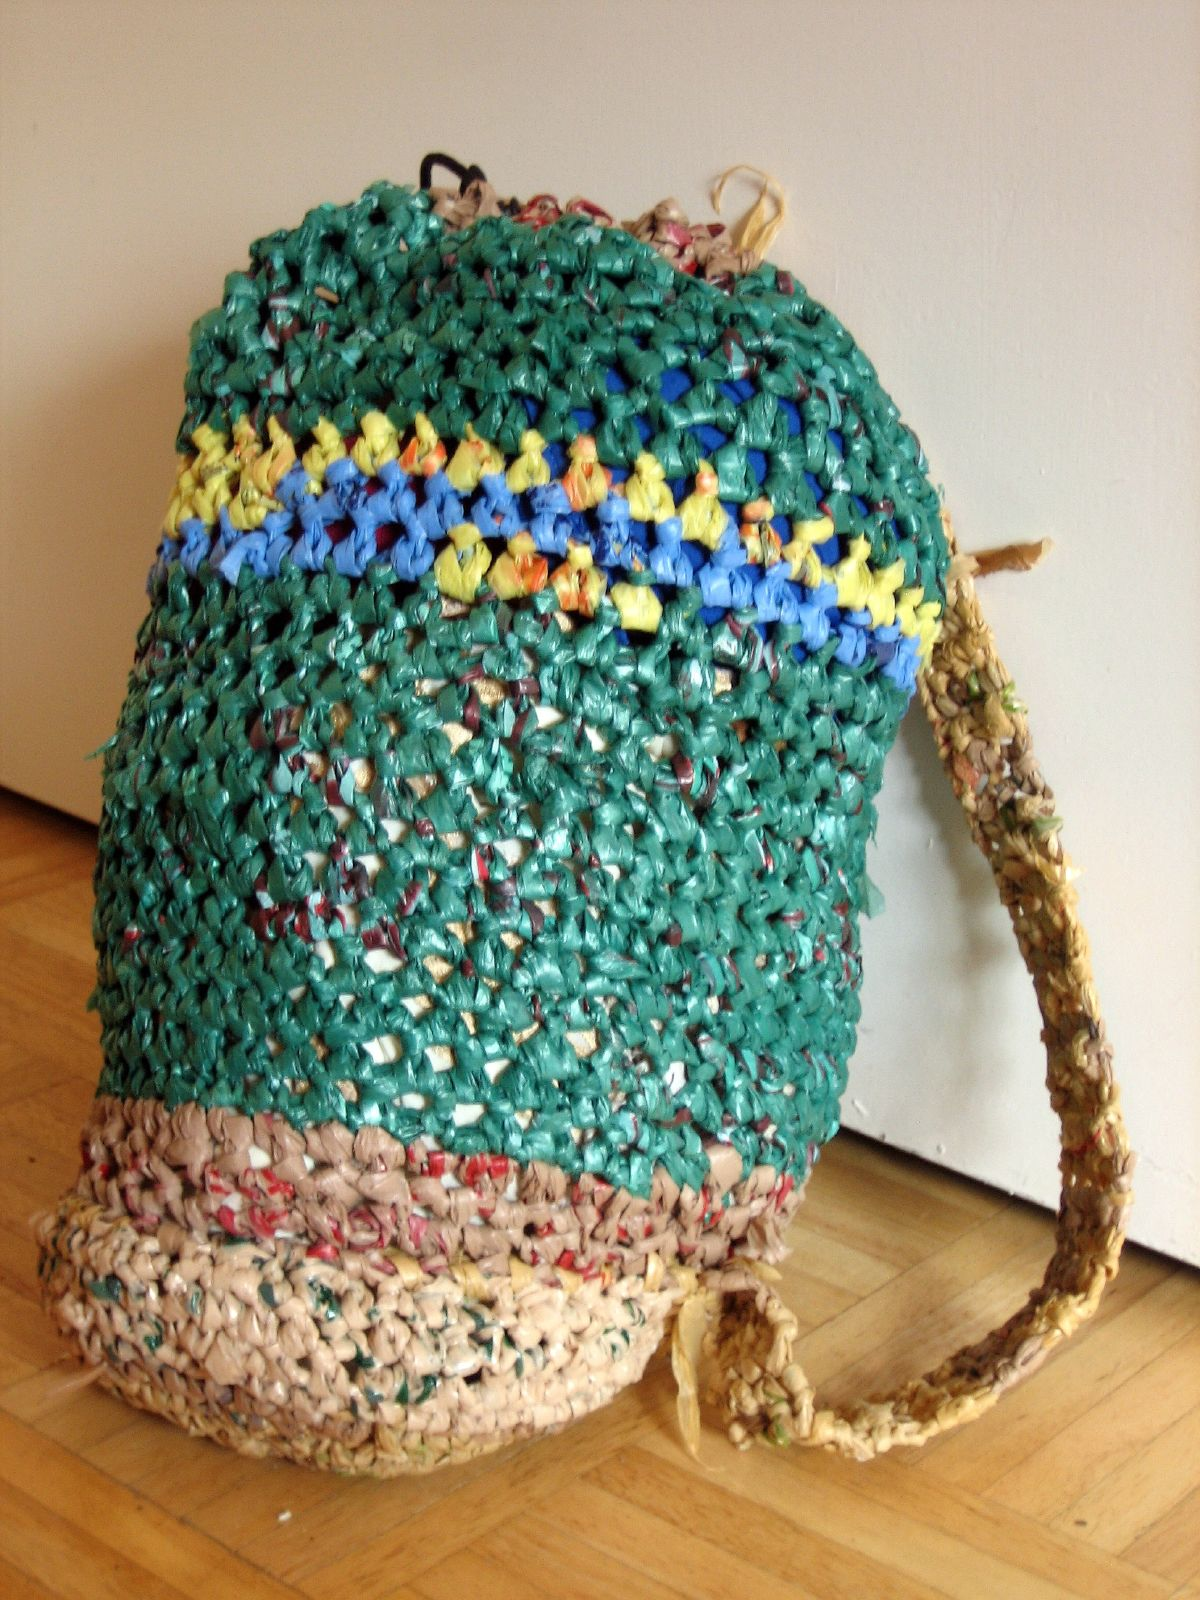 Crochet Pattern For Bags Plastic : Plastic Bag Creations BagsBeGone.com